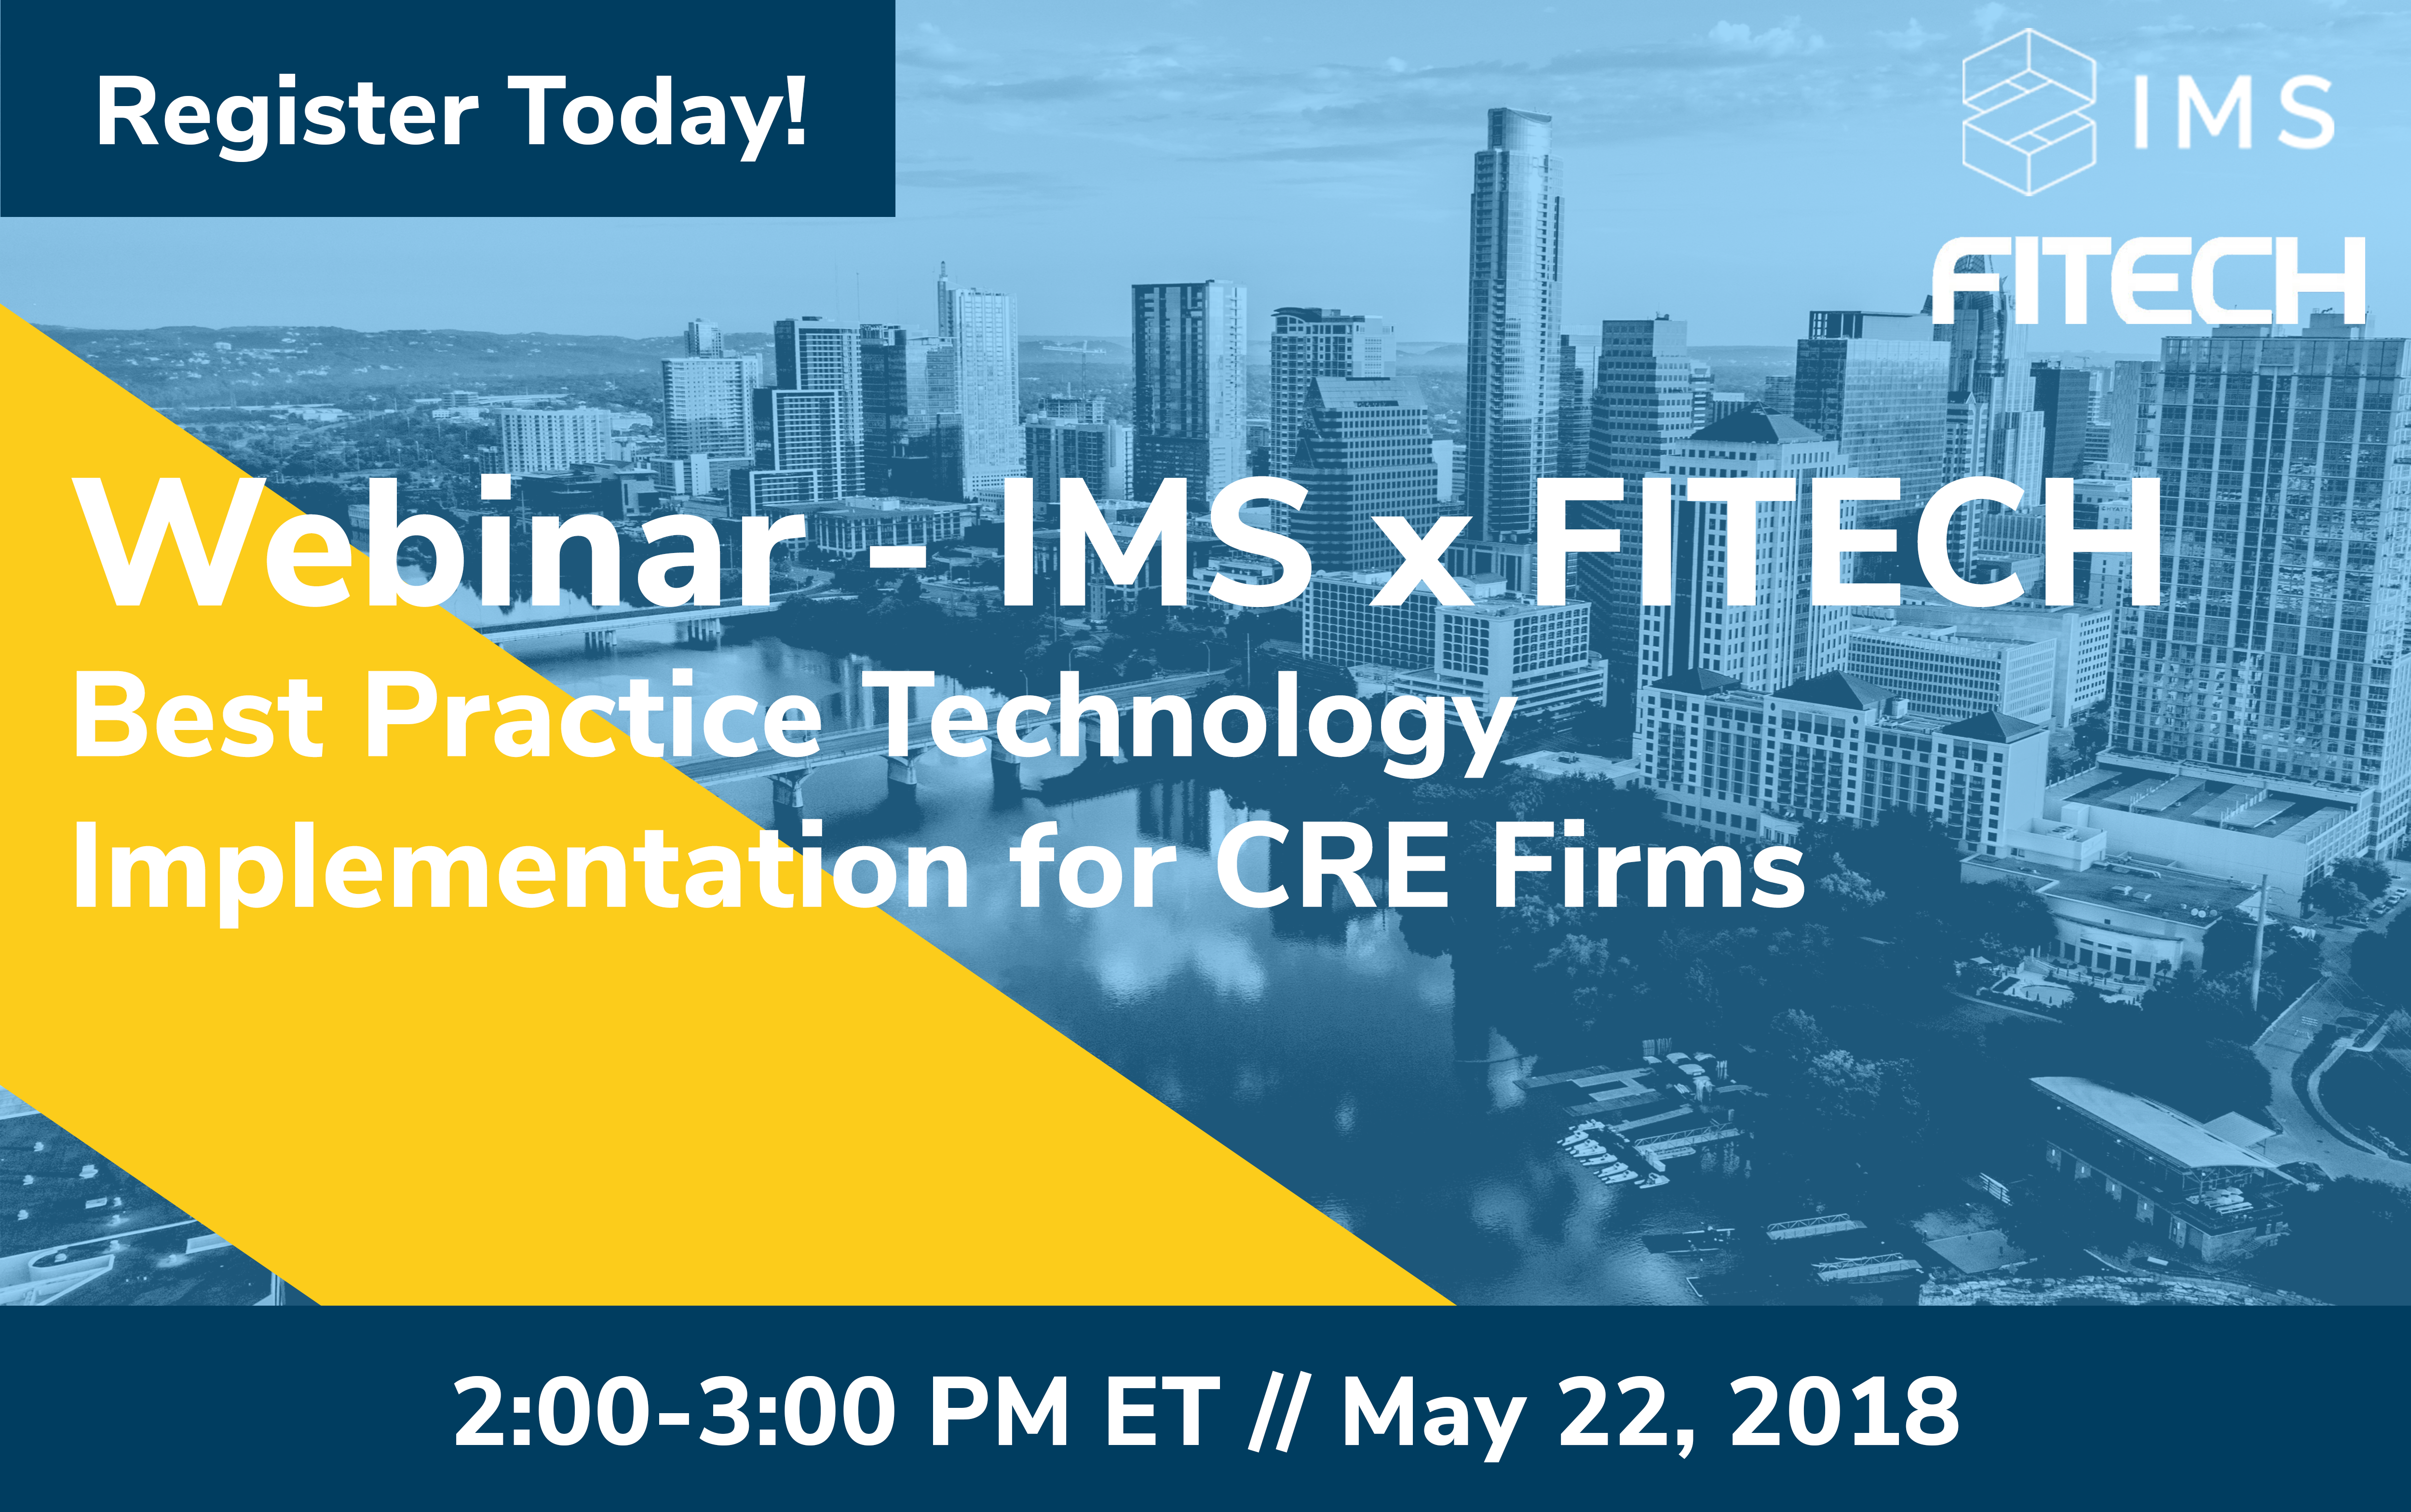 Webinar - Best Practice Technology Implementation for CRE Firms